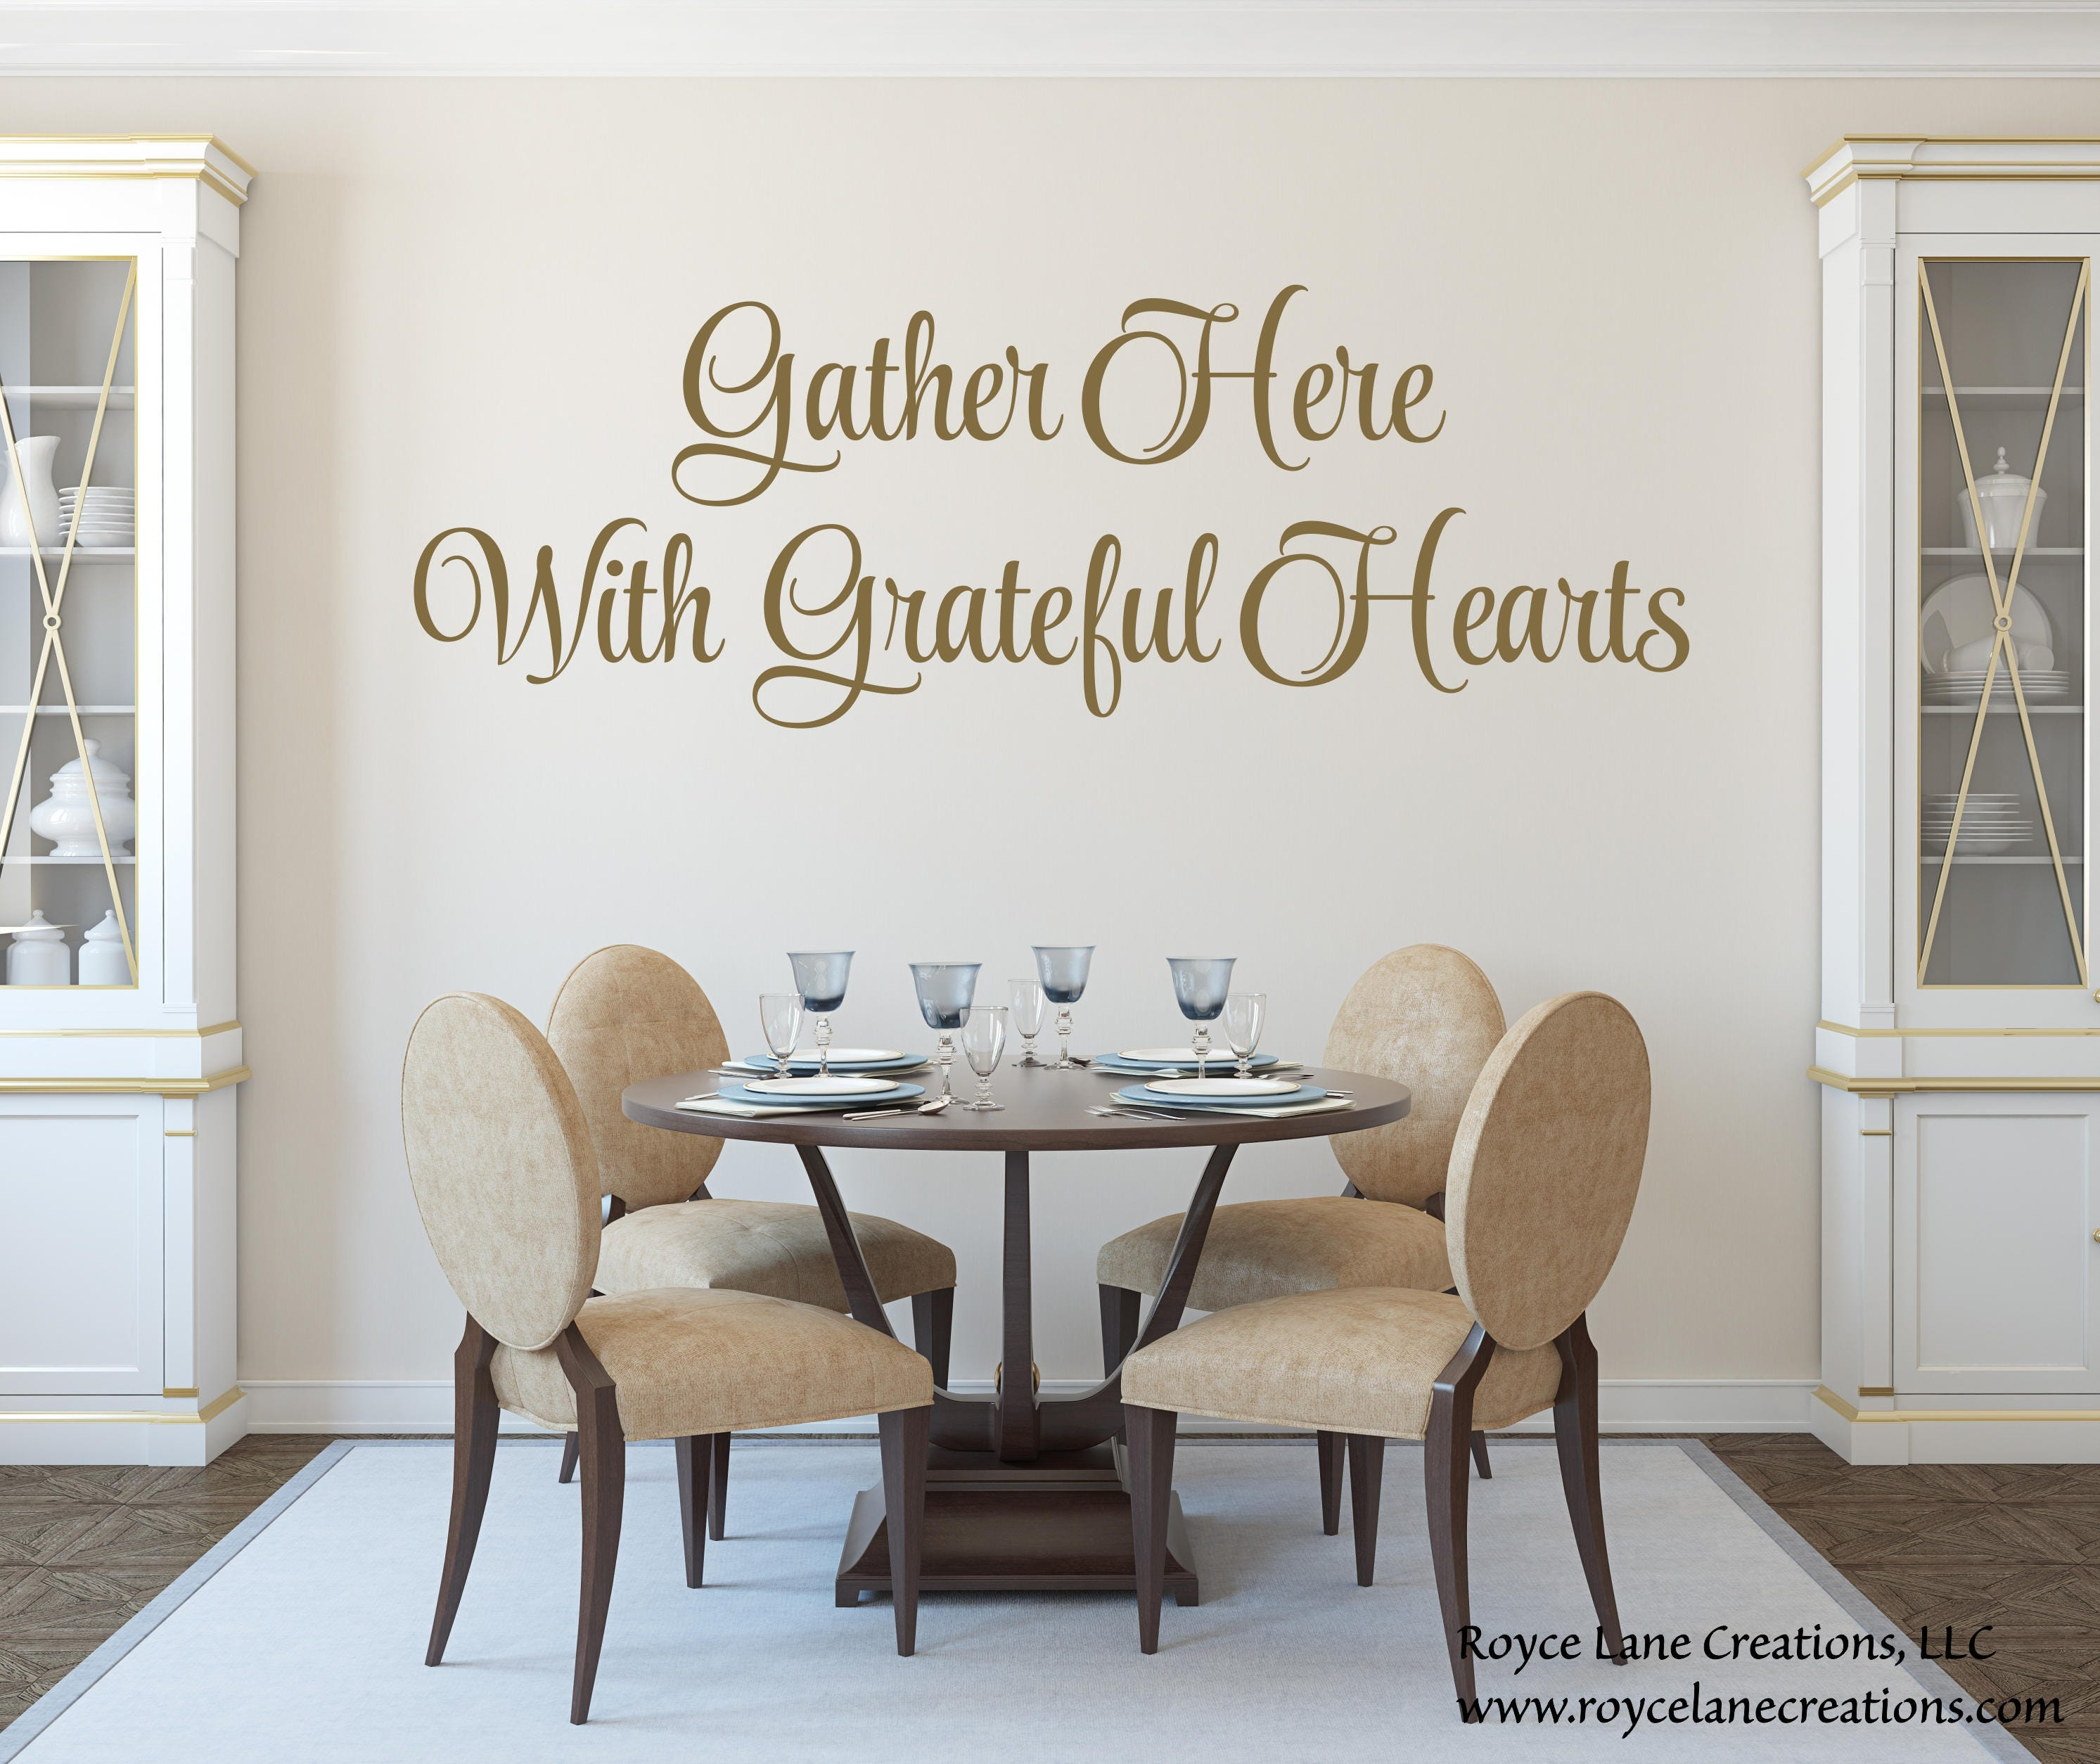 Gather Here With Grateful Hearts Kitchen Or Dining Room Wall Decal